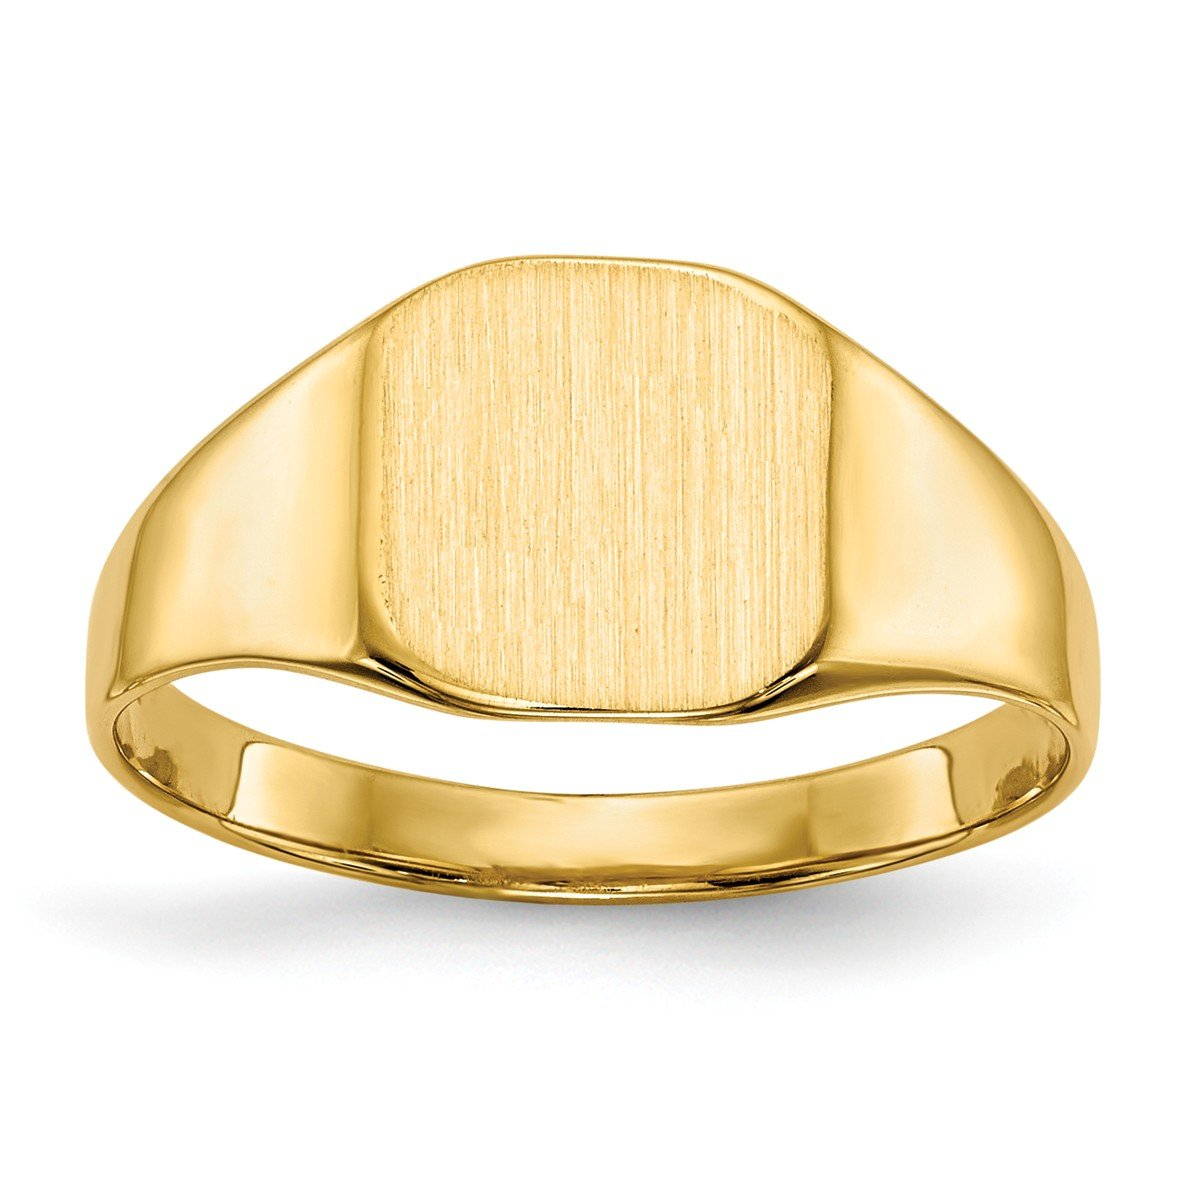 Roy Rose Jewelry 14K Yellow Gold Solid Back Mens or Ladies Signet Ring Custom Personailzed with Free Engraving Available Initial ~ Size 4 by Roy Rose Jewelry